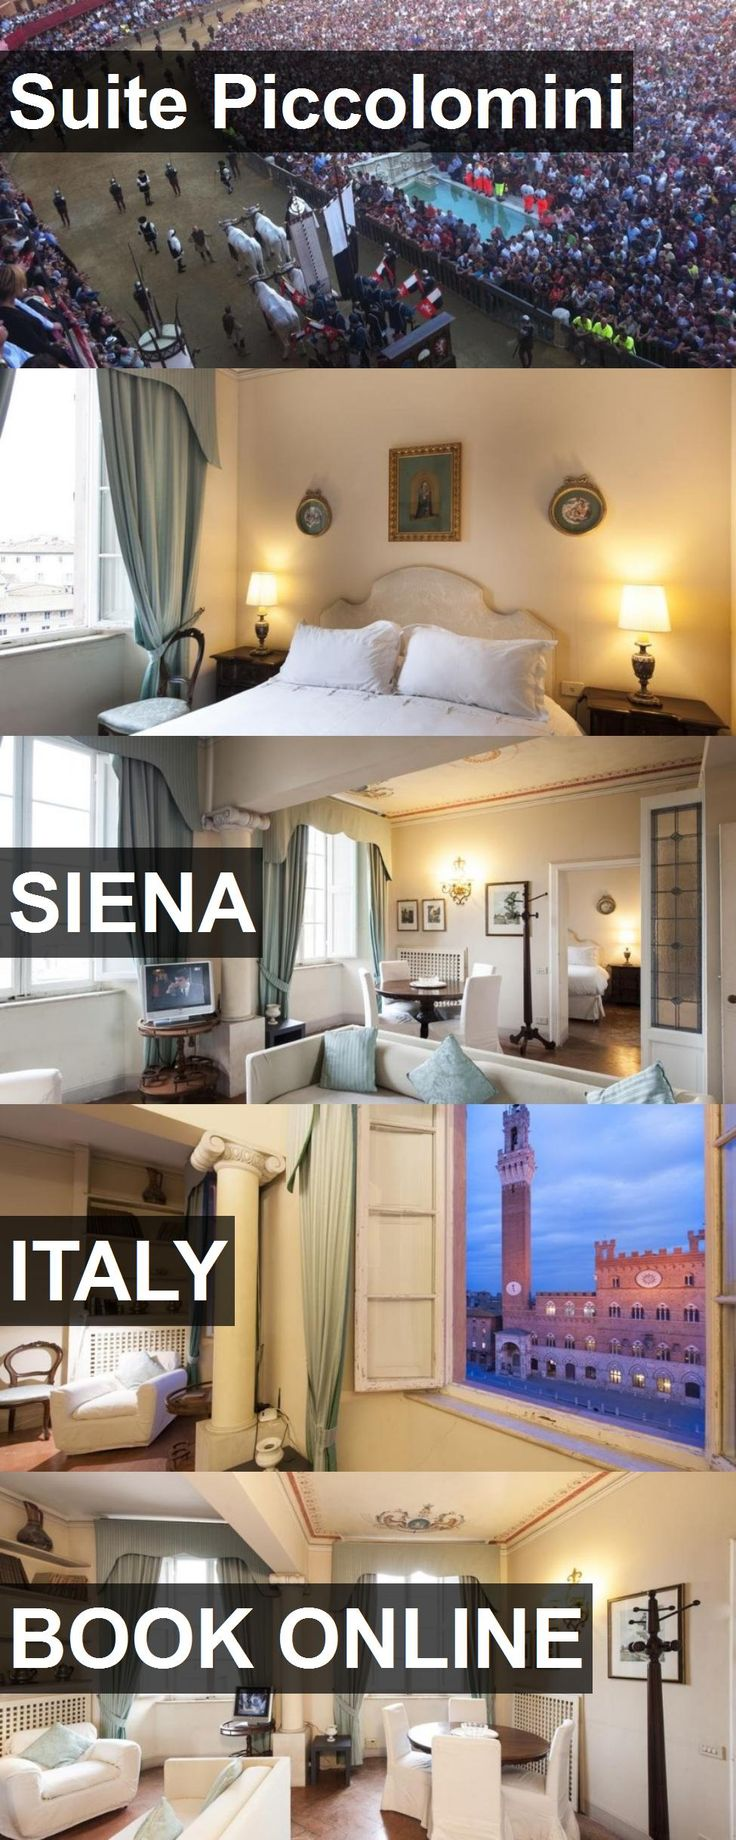 Hotel Suite Piccolomini in Siena, Italy. For more information, photos, reviews and best prices please follow the link. #Italy #Siena #SuitePiccolomini #hotel #travel #vacation